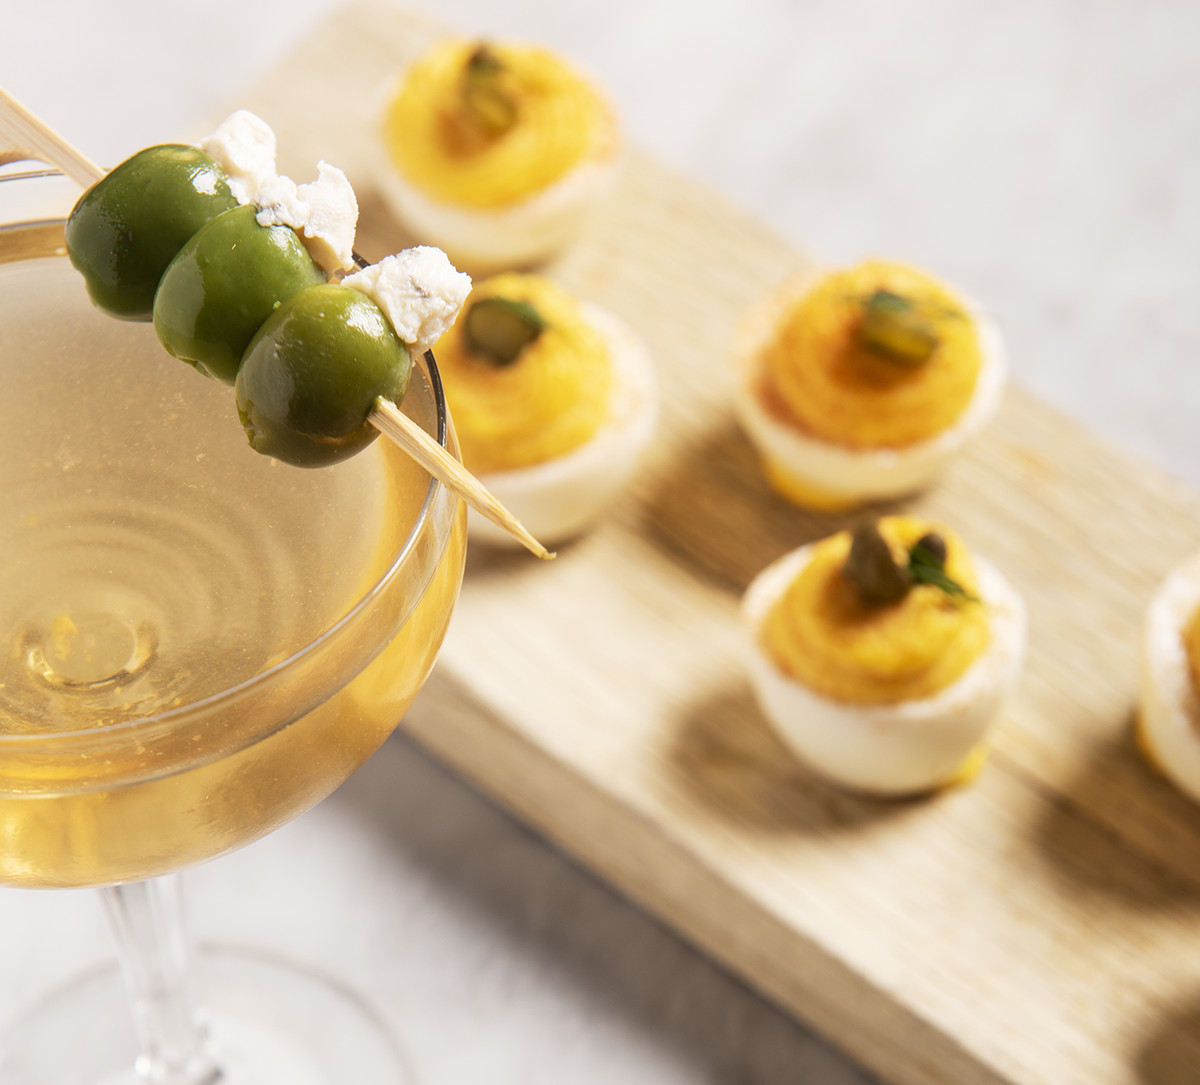 Four deviled eggs and a martini with three olives